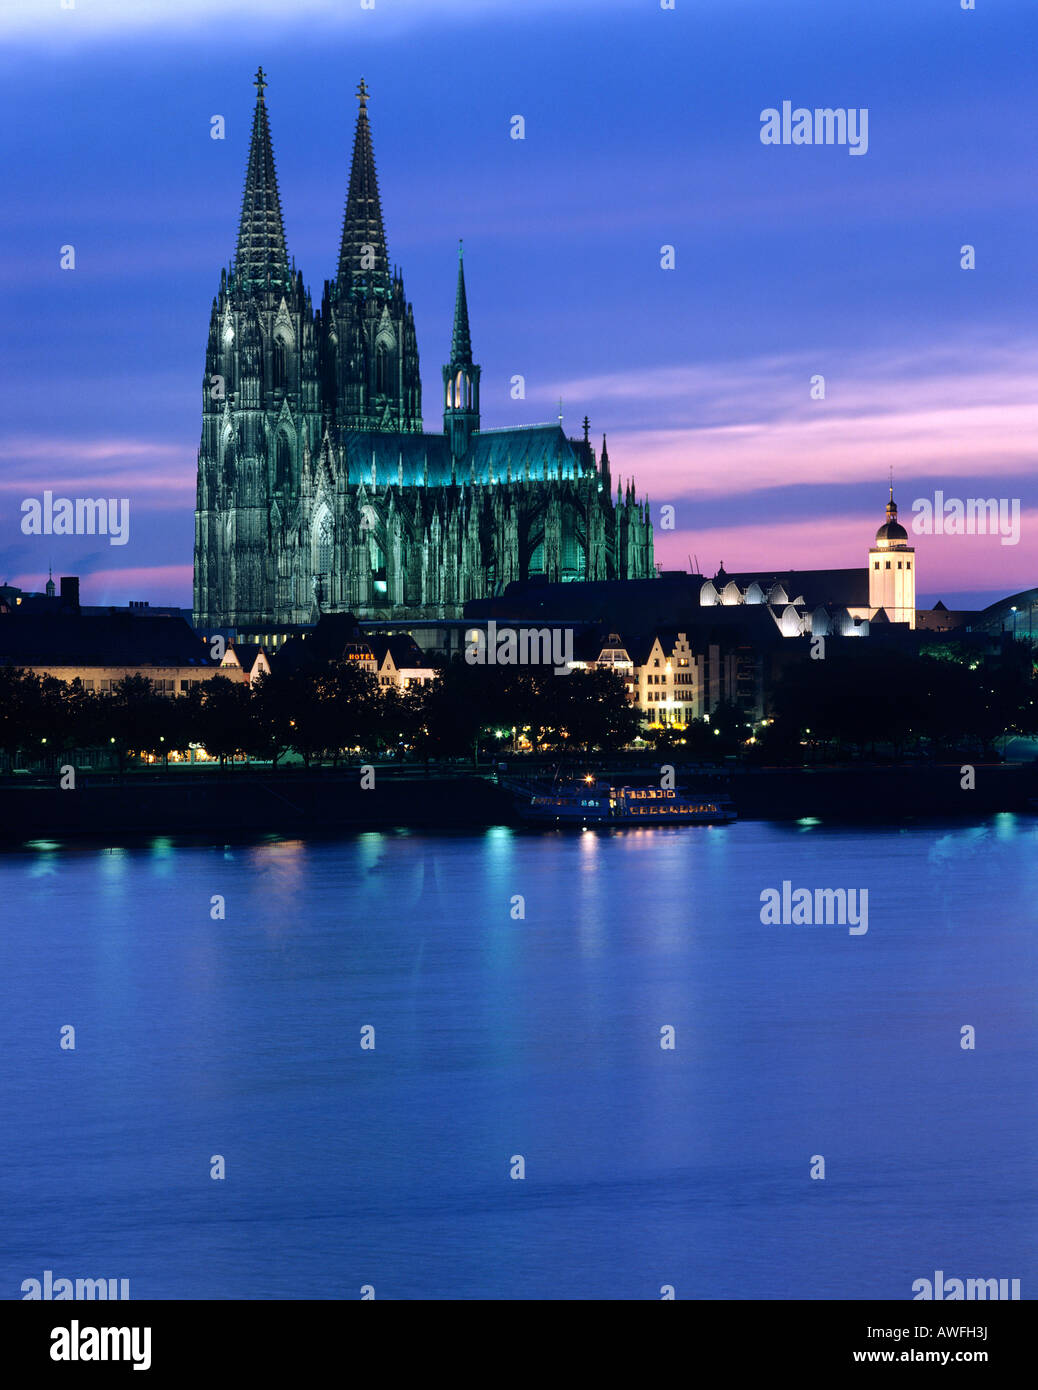 Cologne Cathedral and the Rhine River at dusk, Cologne, North Rhine-Westphalia, Germany, Europe - Stock Image